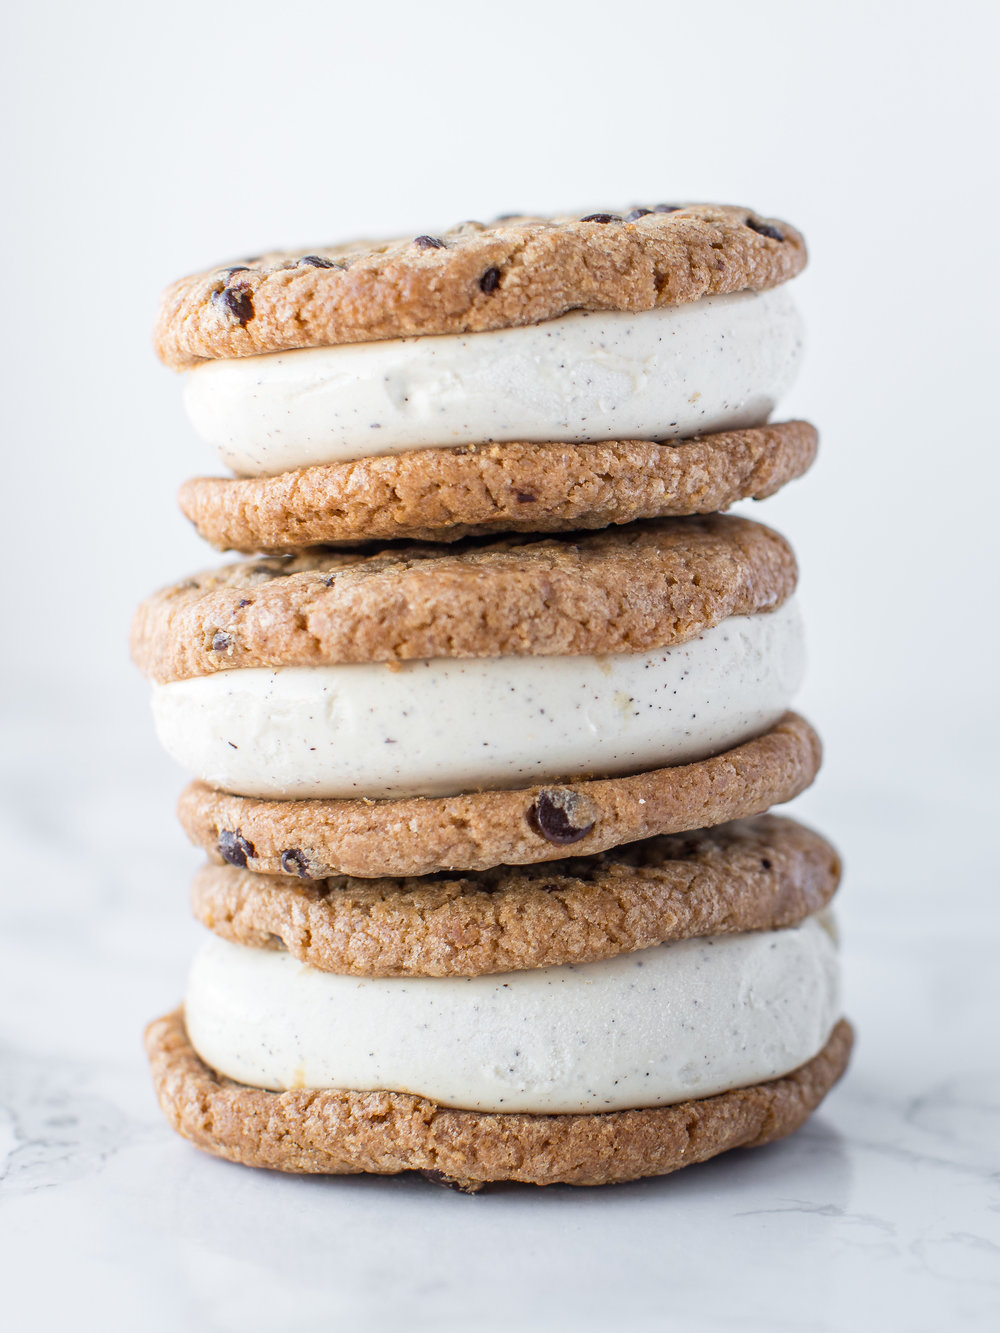 Coolhaus_Extra Images-5.JPG